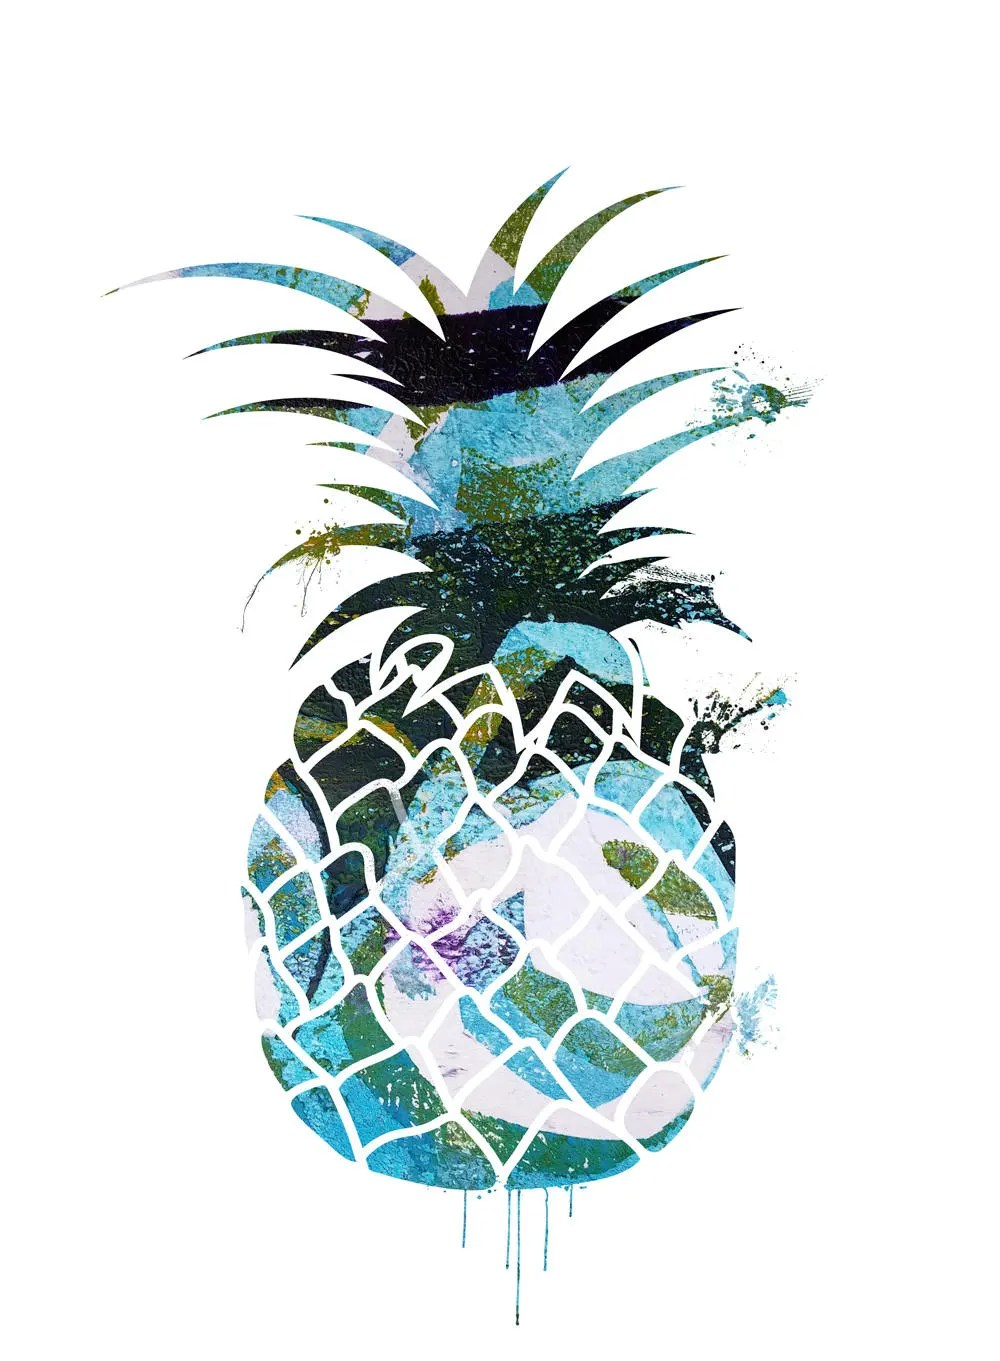 Ananas Bilder Printable Ananas Tropical Pineapple Wish Card Instant Download Art Poster Print Yourself Pineapple Print And Frame It Today